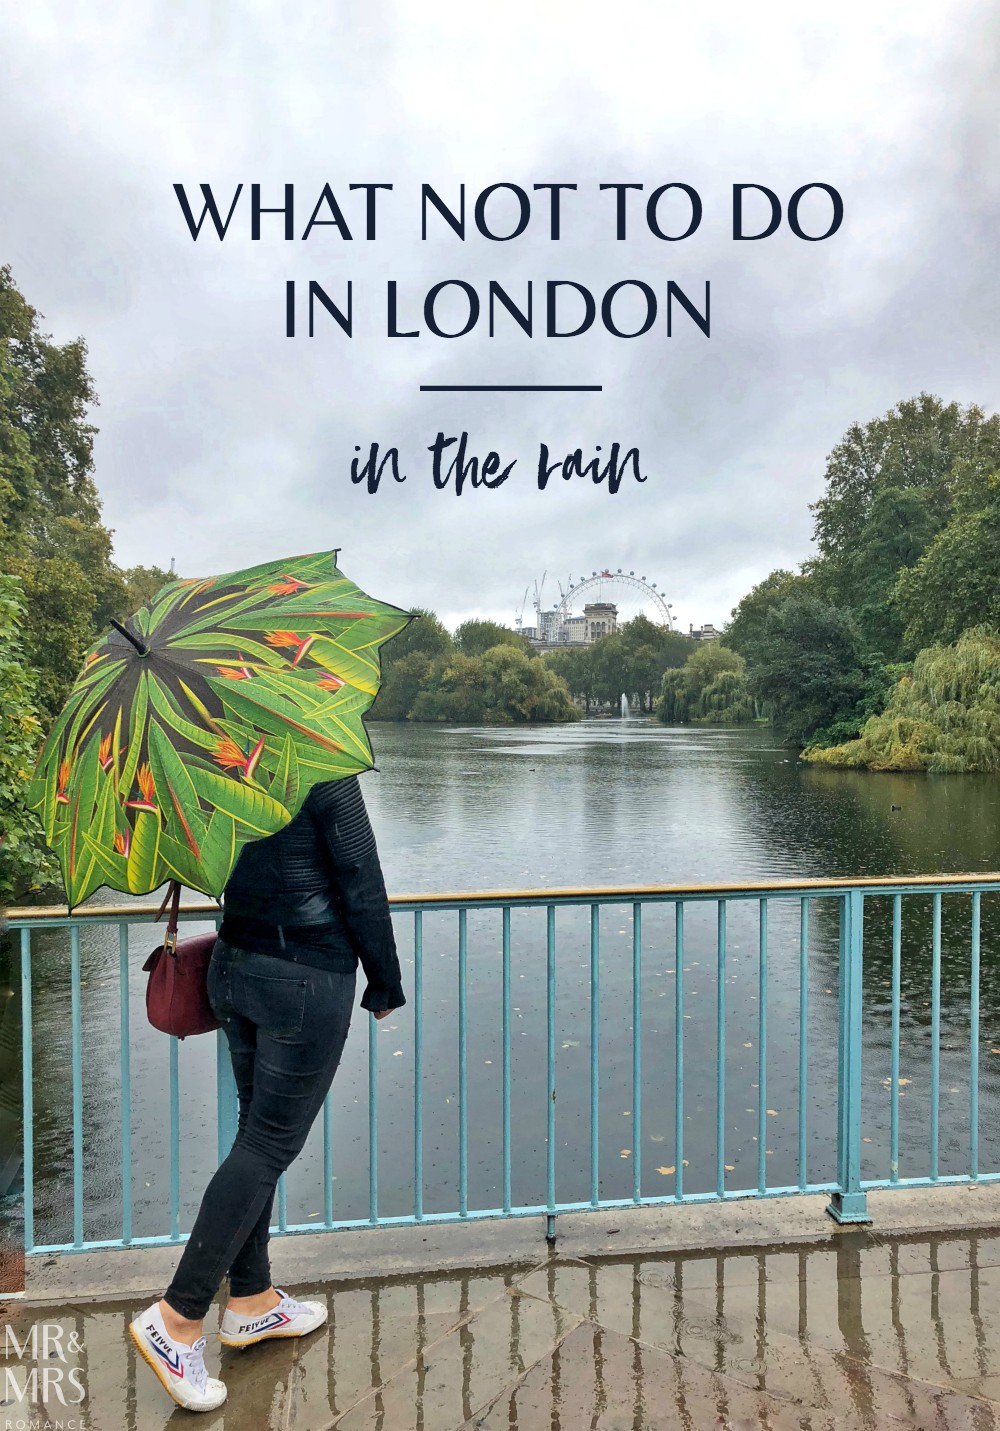 London in the rain - St James Park